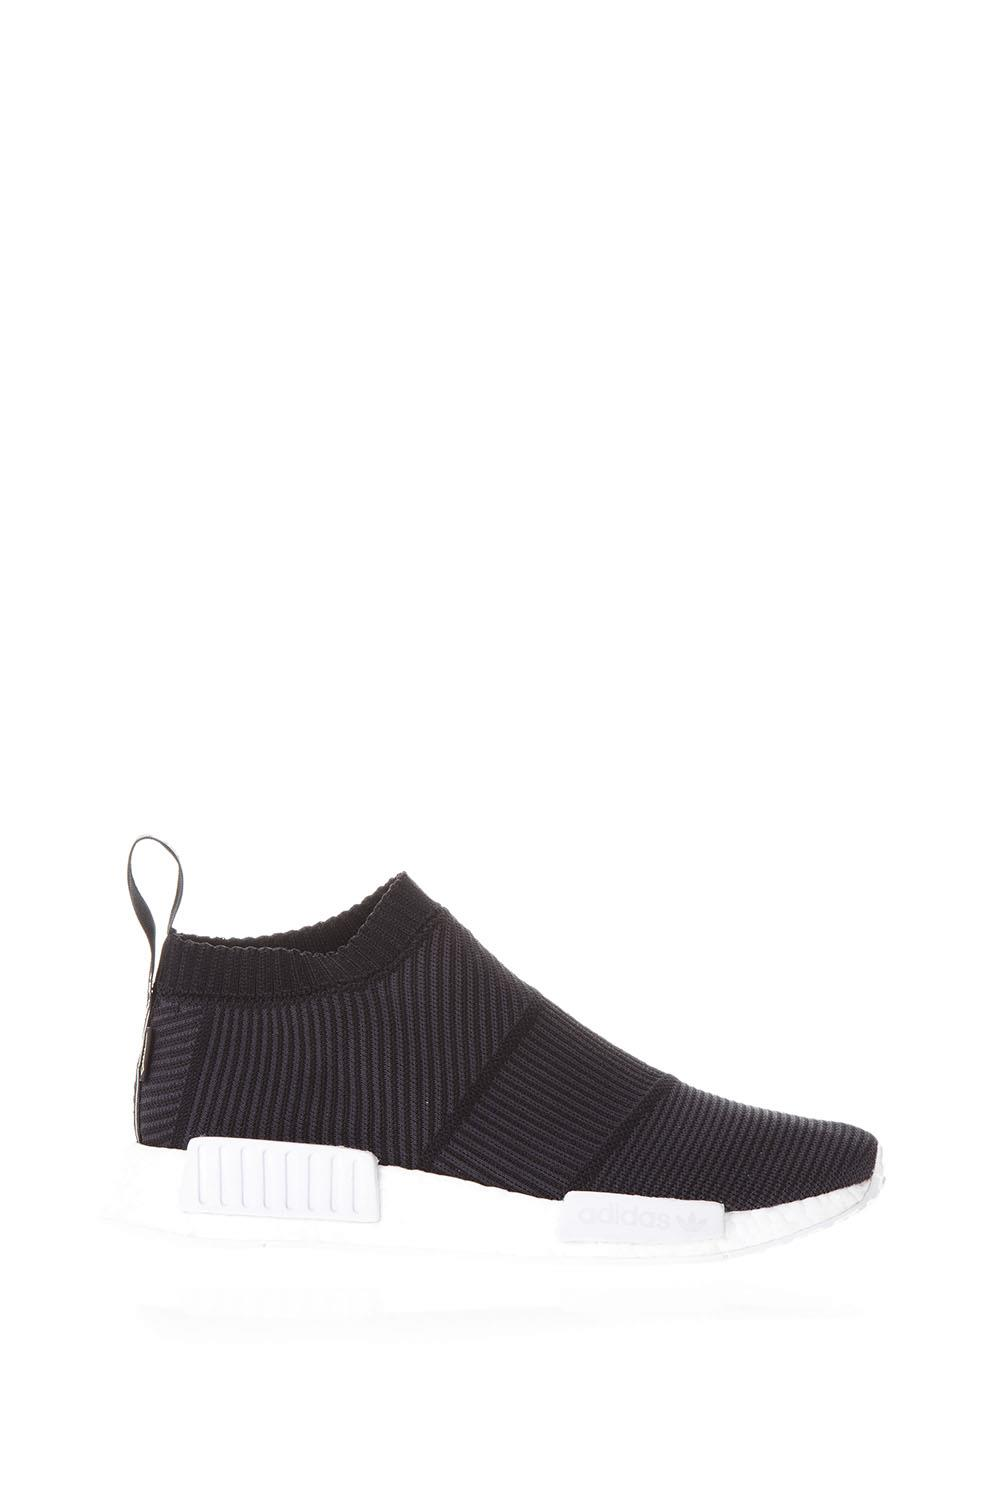 timeless design ac4c3 fa40a SNEAKERS NMD CS1 GTX IN BLACK PRIMEKNIT SS 2018 - ADIDAS ORIGINALS -  Boutique Galiano